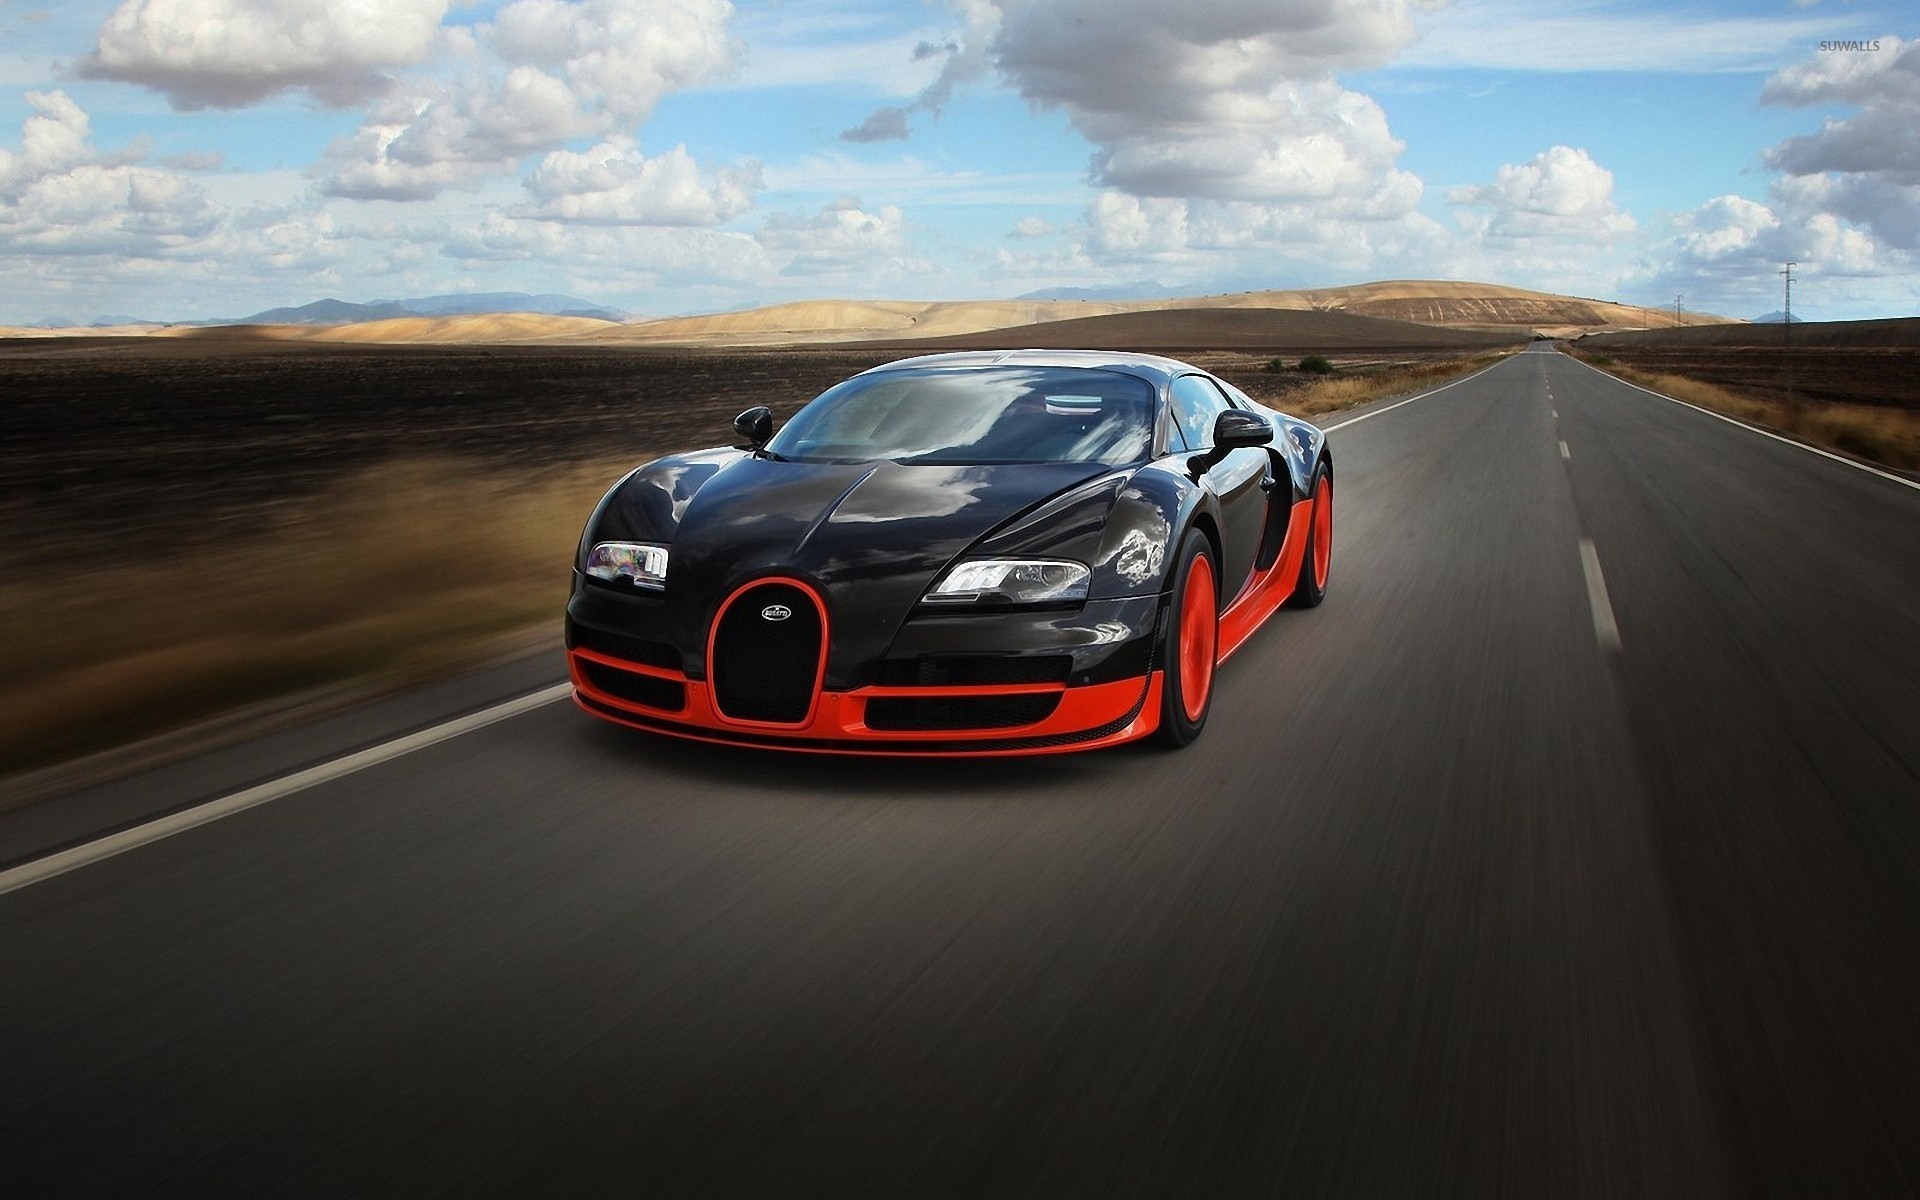 bugatti veyron eb 16 4 7 wallpaper car wallpapers 7772. Black Bedroom Furniture Sets. Home Design Ideas